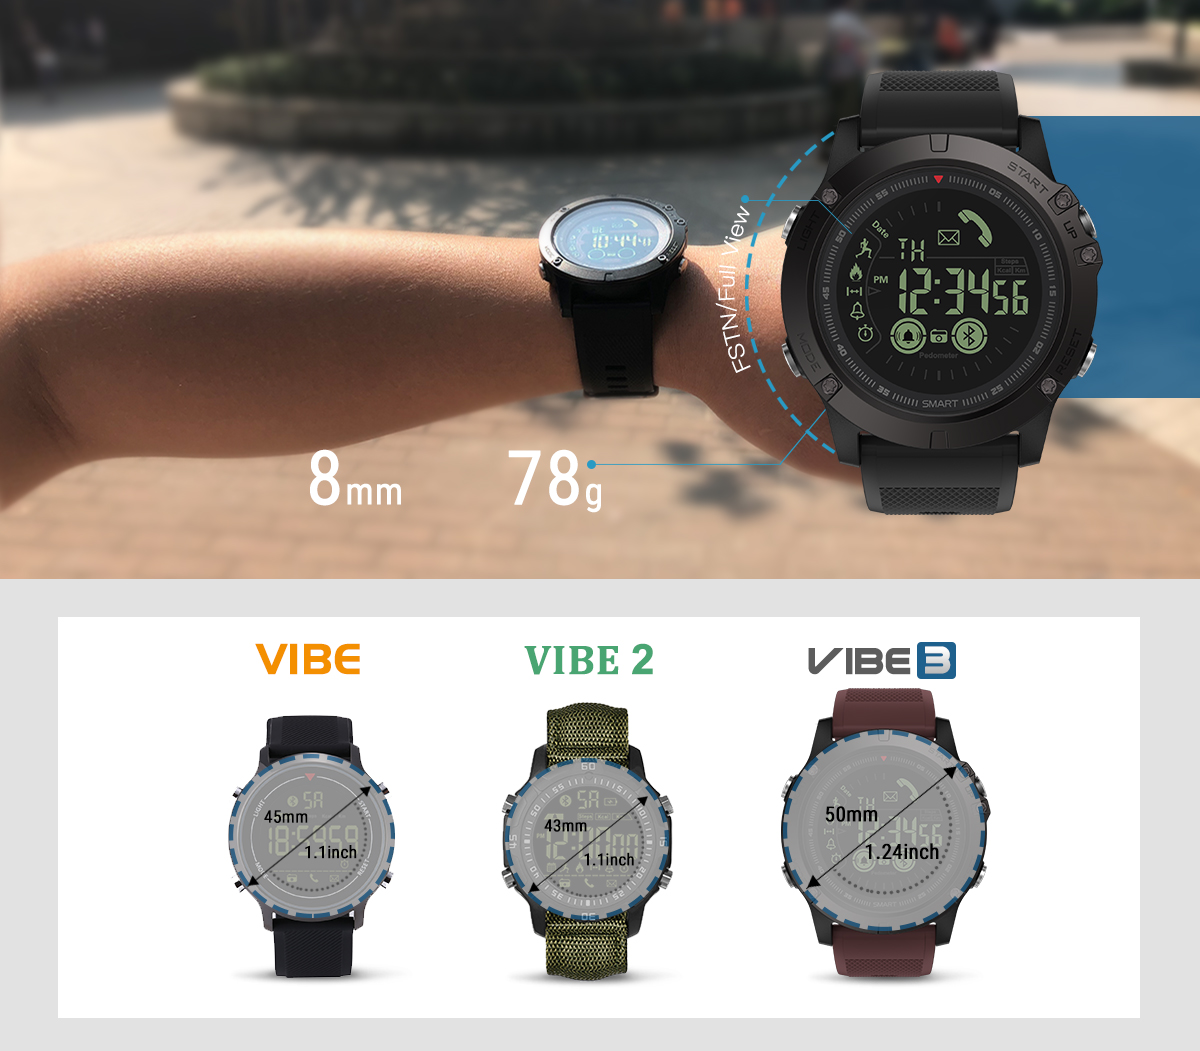 VIBE 3 Rugged Smartwatch 33-month Standby Time 24h All-Weather Monitoring Smart Watch For IOS And Android - watches